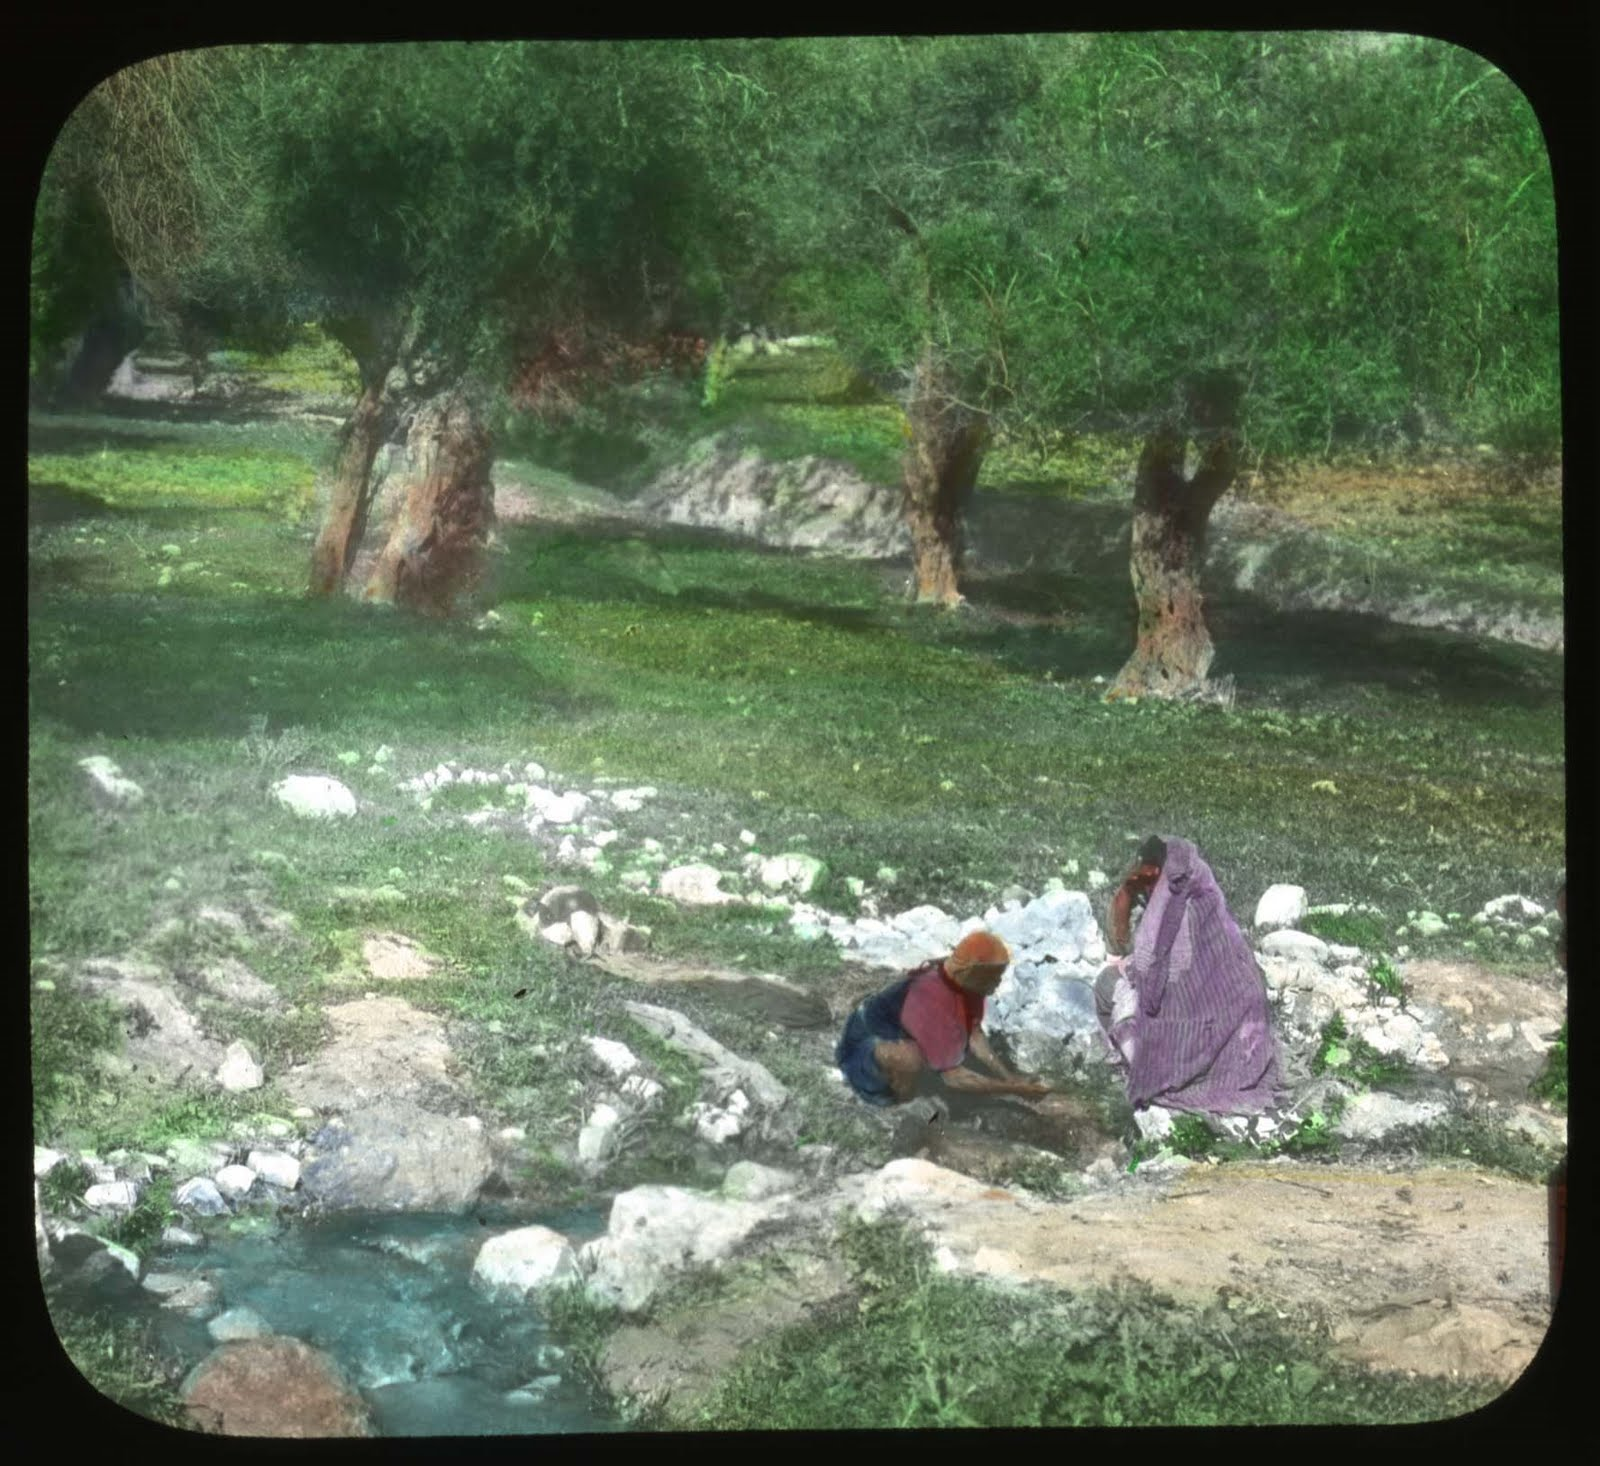 Scenes from Crimea http://michele-dogslife.blogspot.com/2010/04/lantern-slides-of-russian-life-1917.html